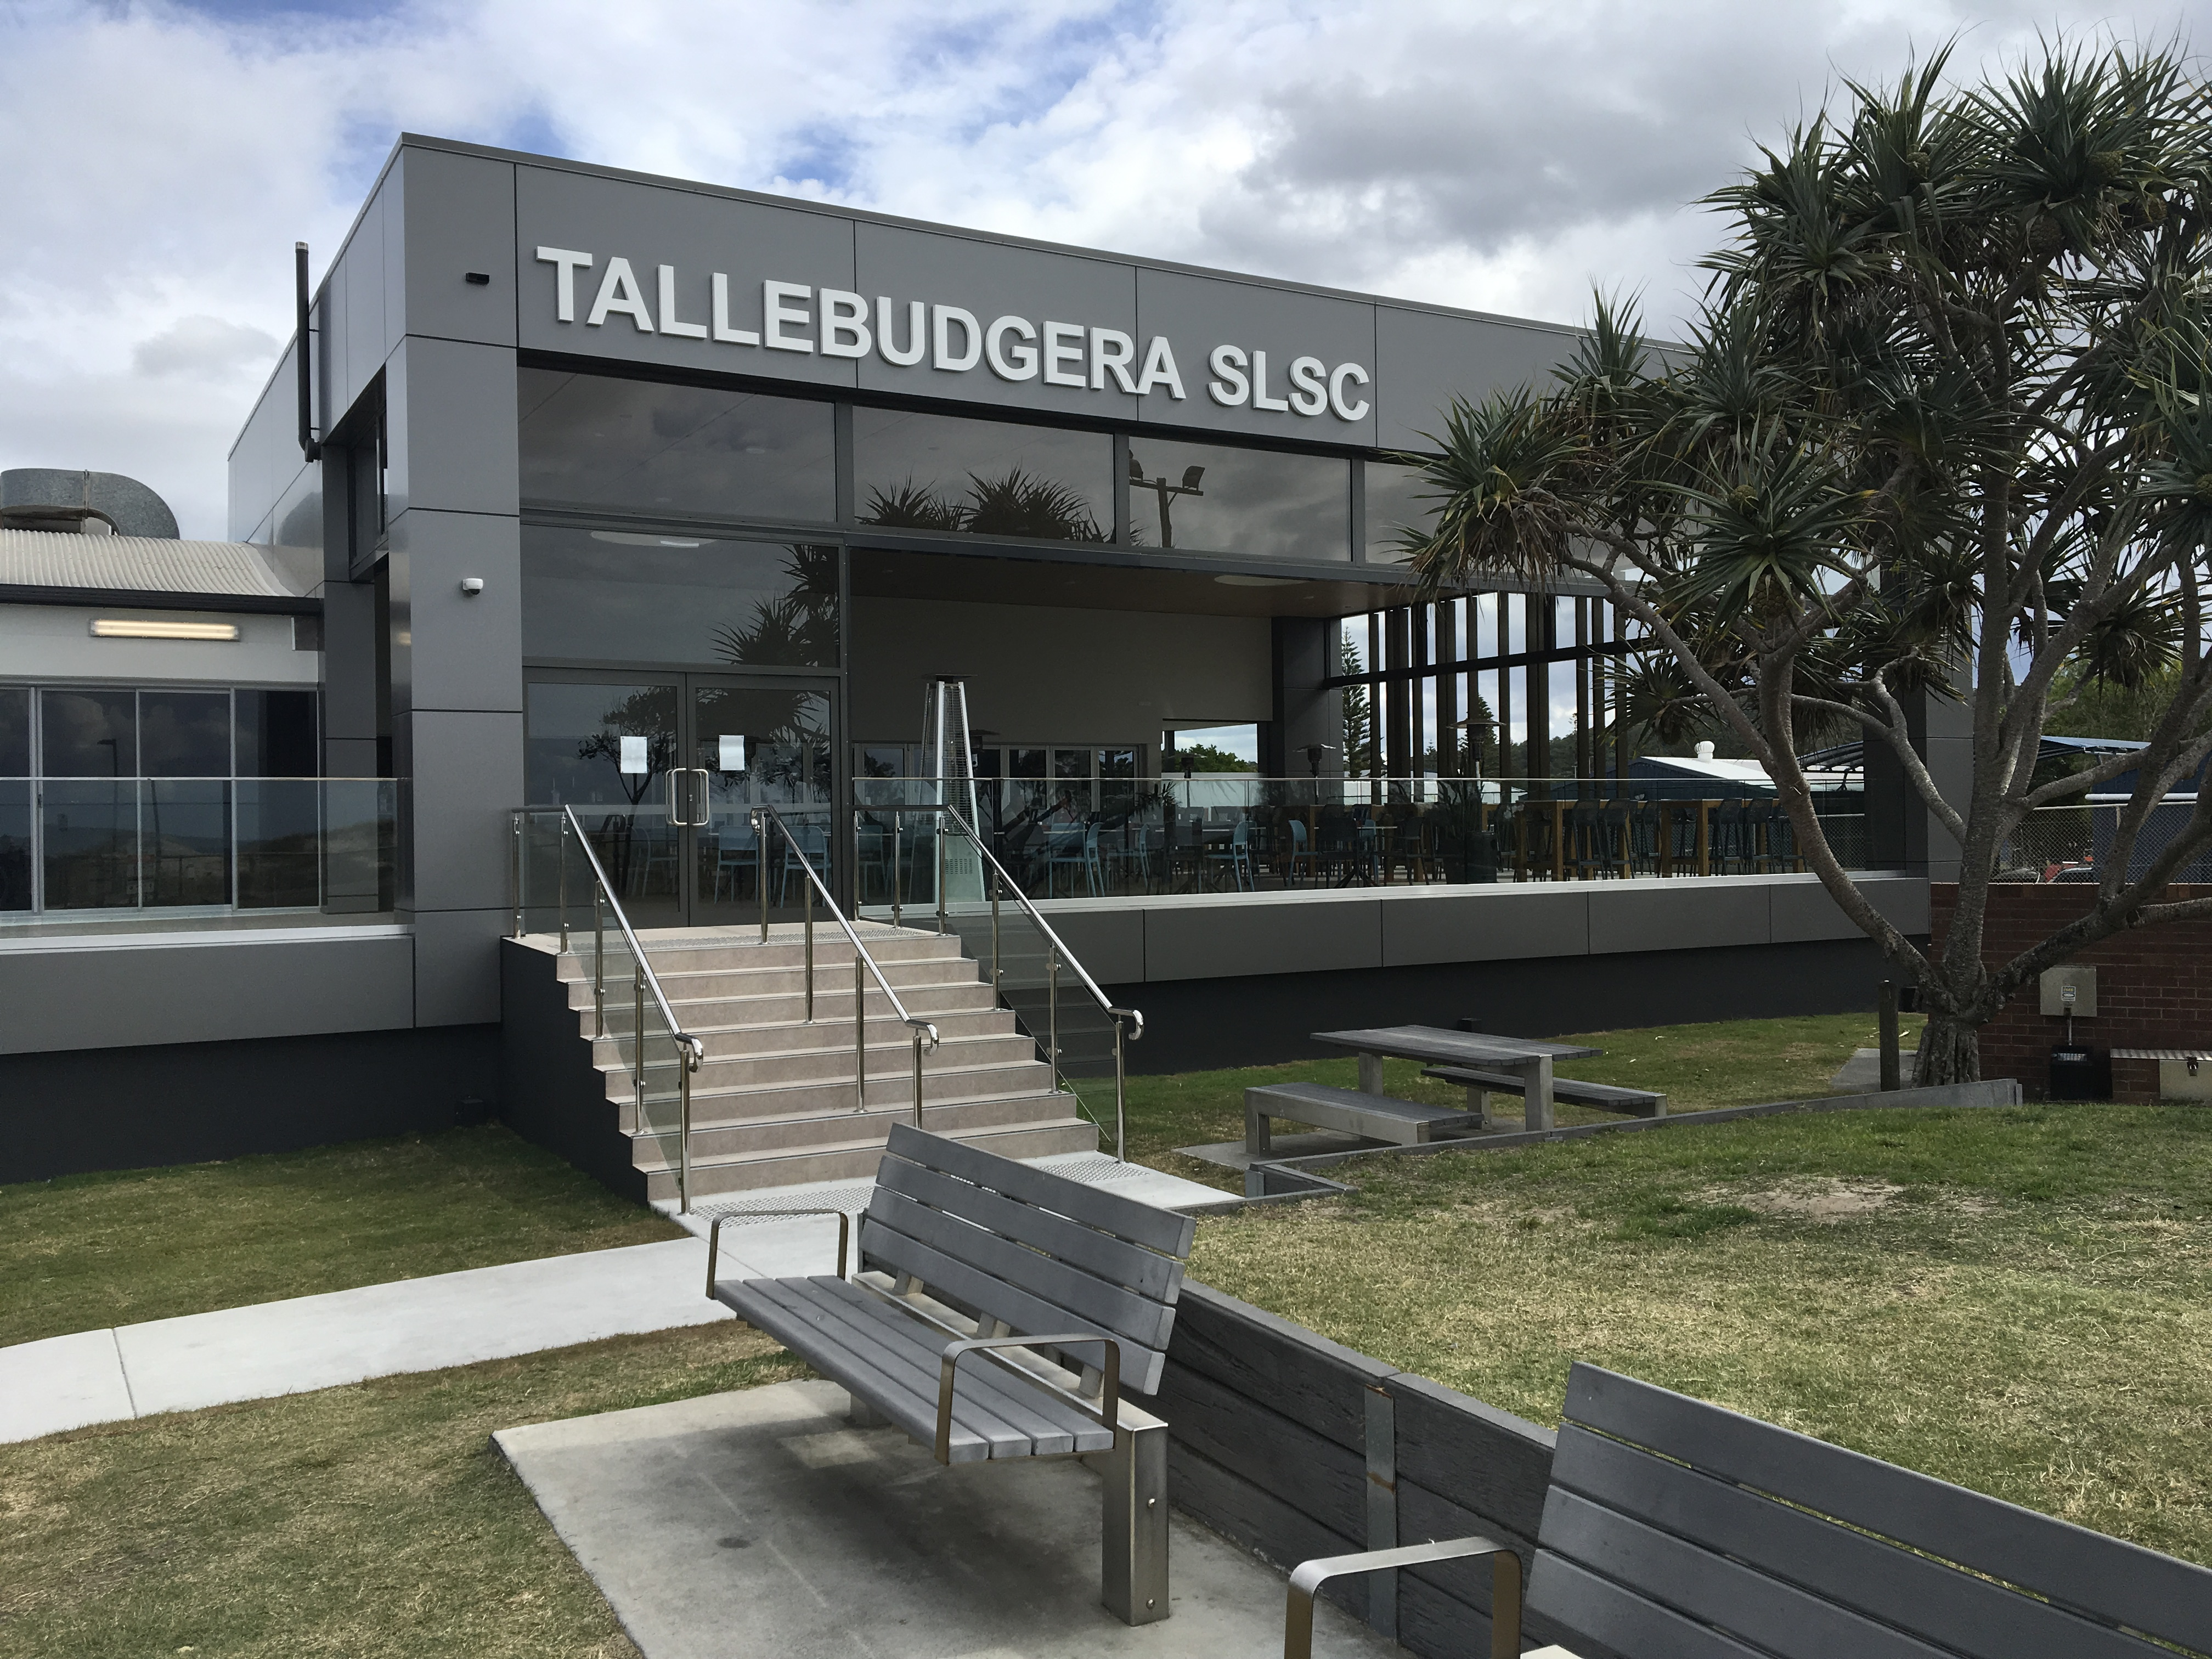 Tallebudgera surf club